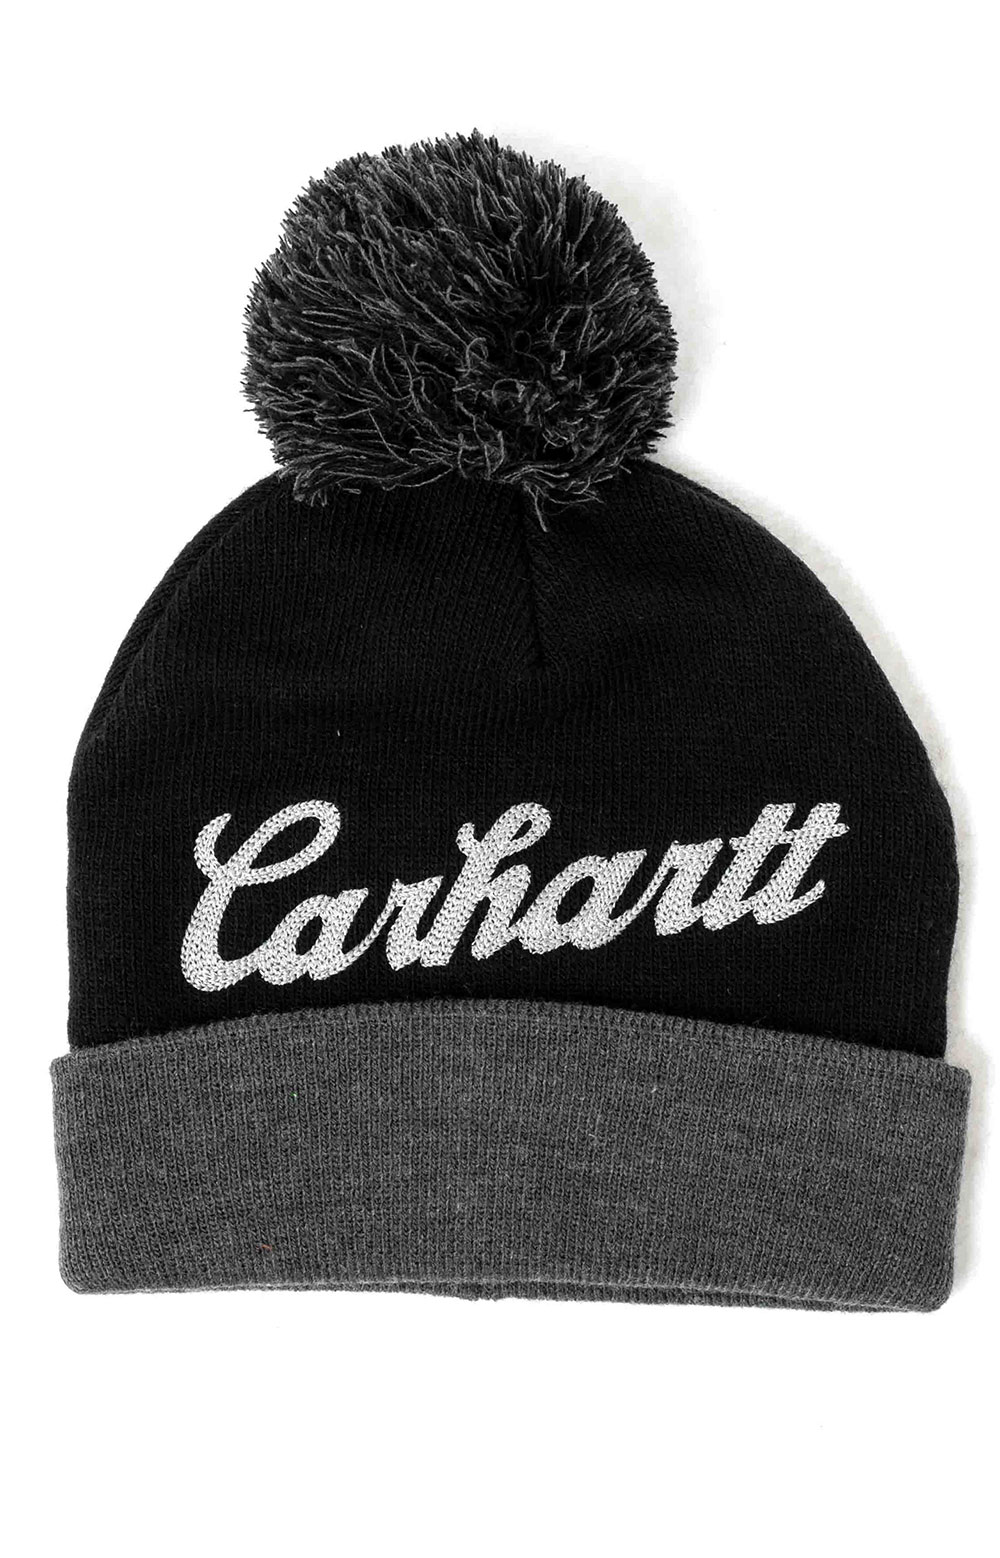 Chainstitch Lookout Beanie - Black